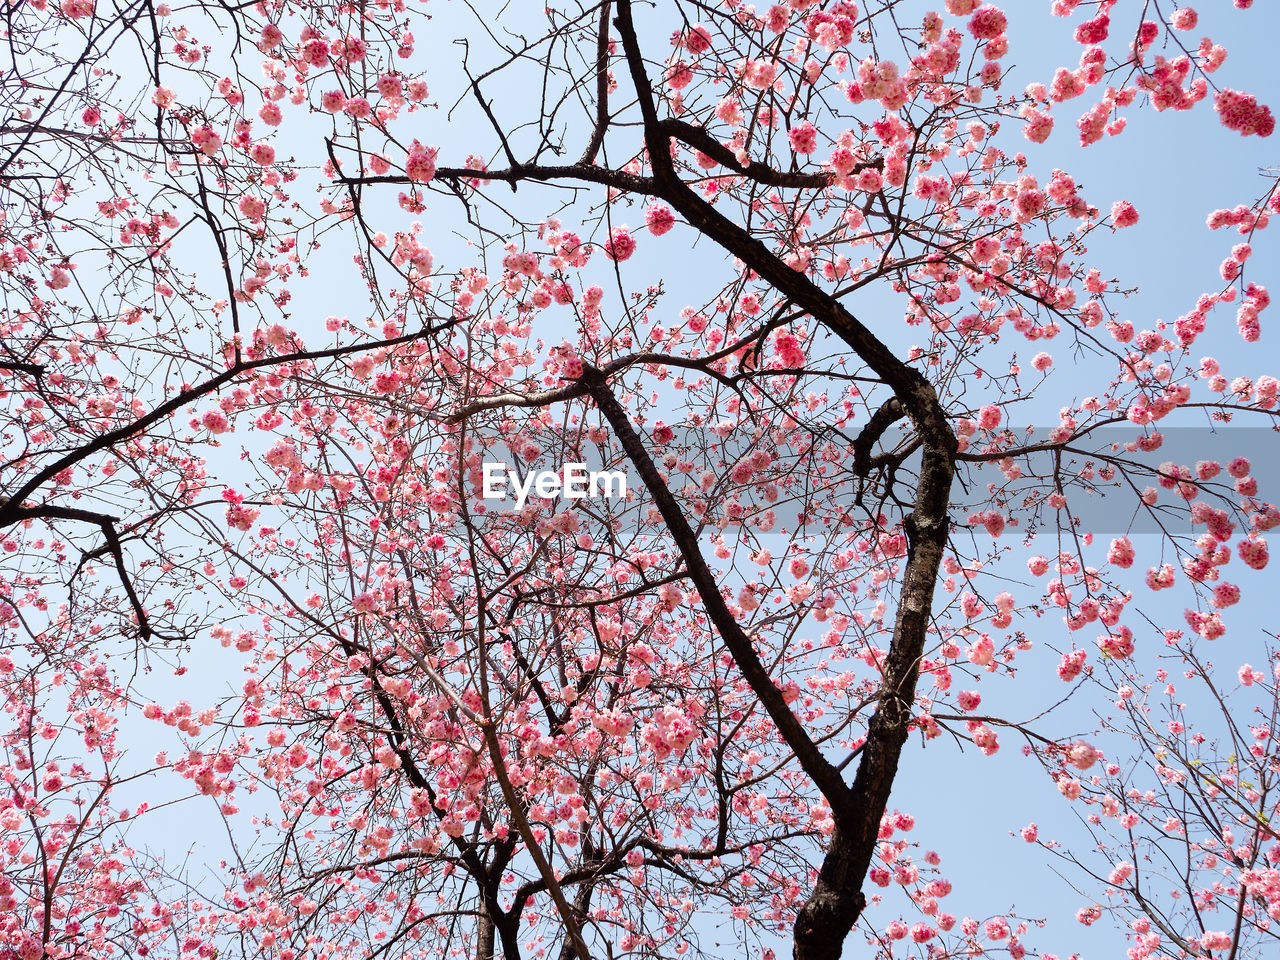 tree, branch, low angle view, flowering plant, plant, flower, pink color, blossom, sky, growth, springtime, nature, no people, beauty in nature, day, cherry blossom, freshness, fragility, cherry tree, clear sky, outdoors, plum blossom, spring